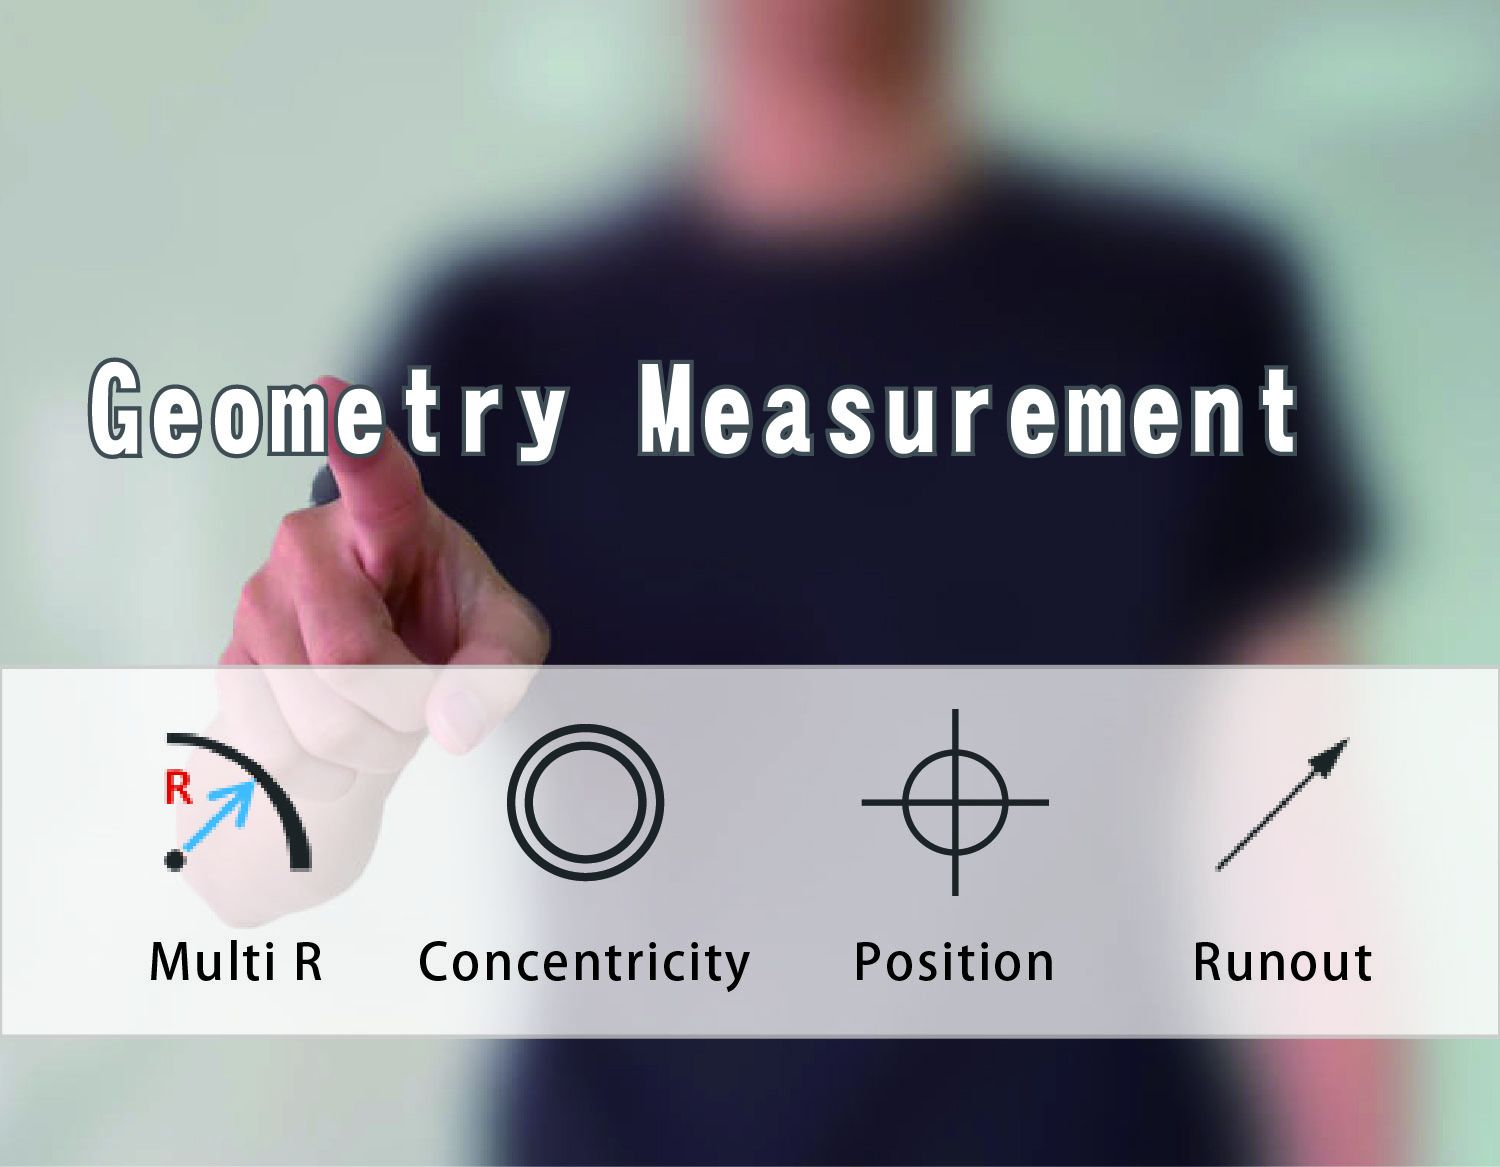 Excellent for Geometry Measurement